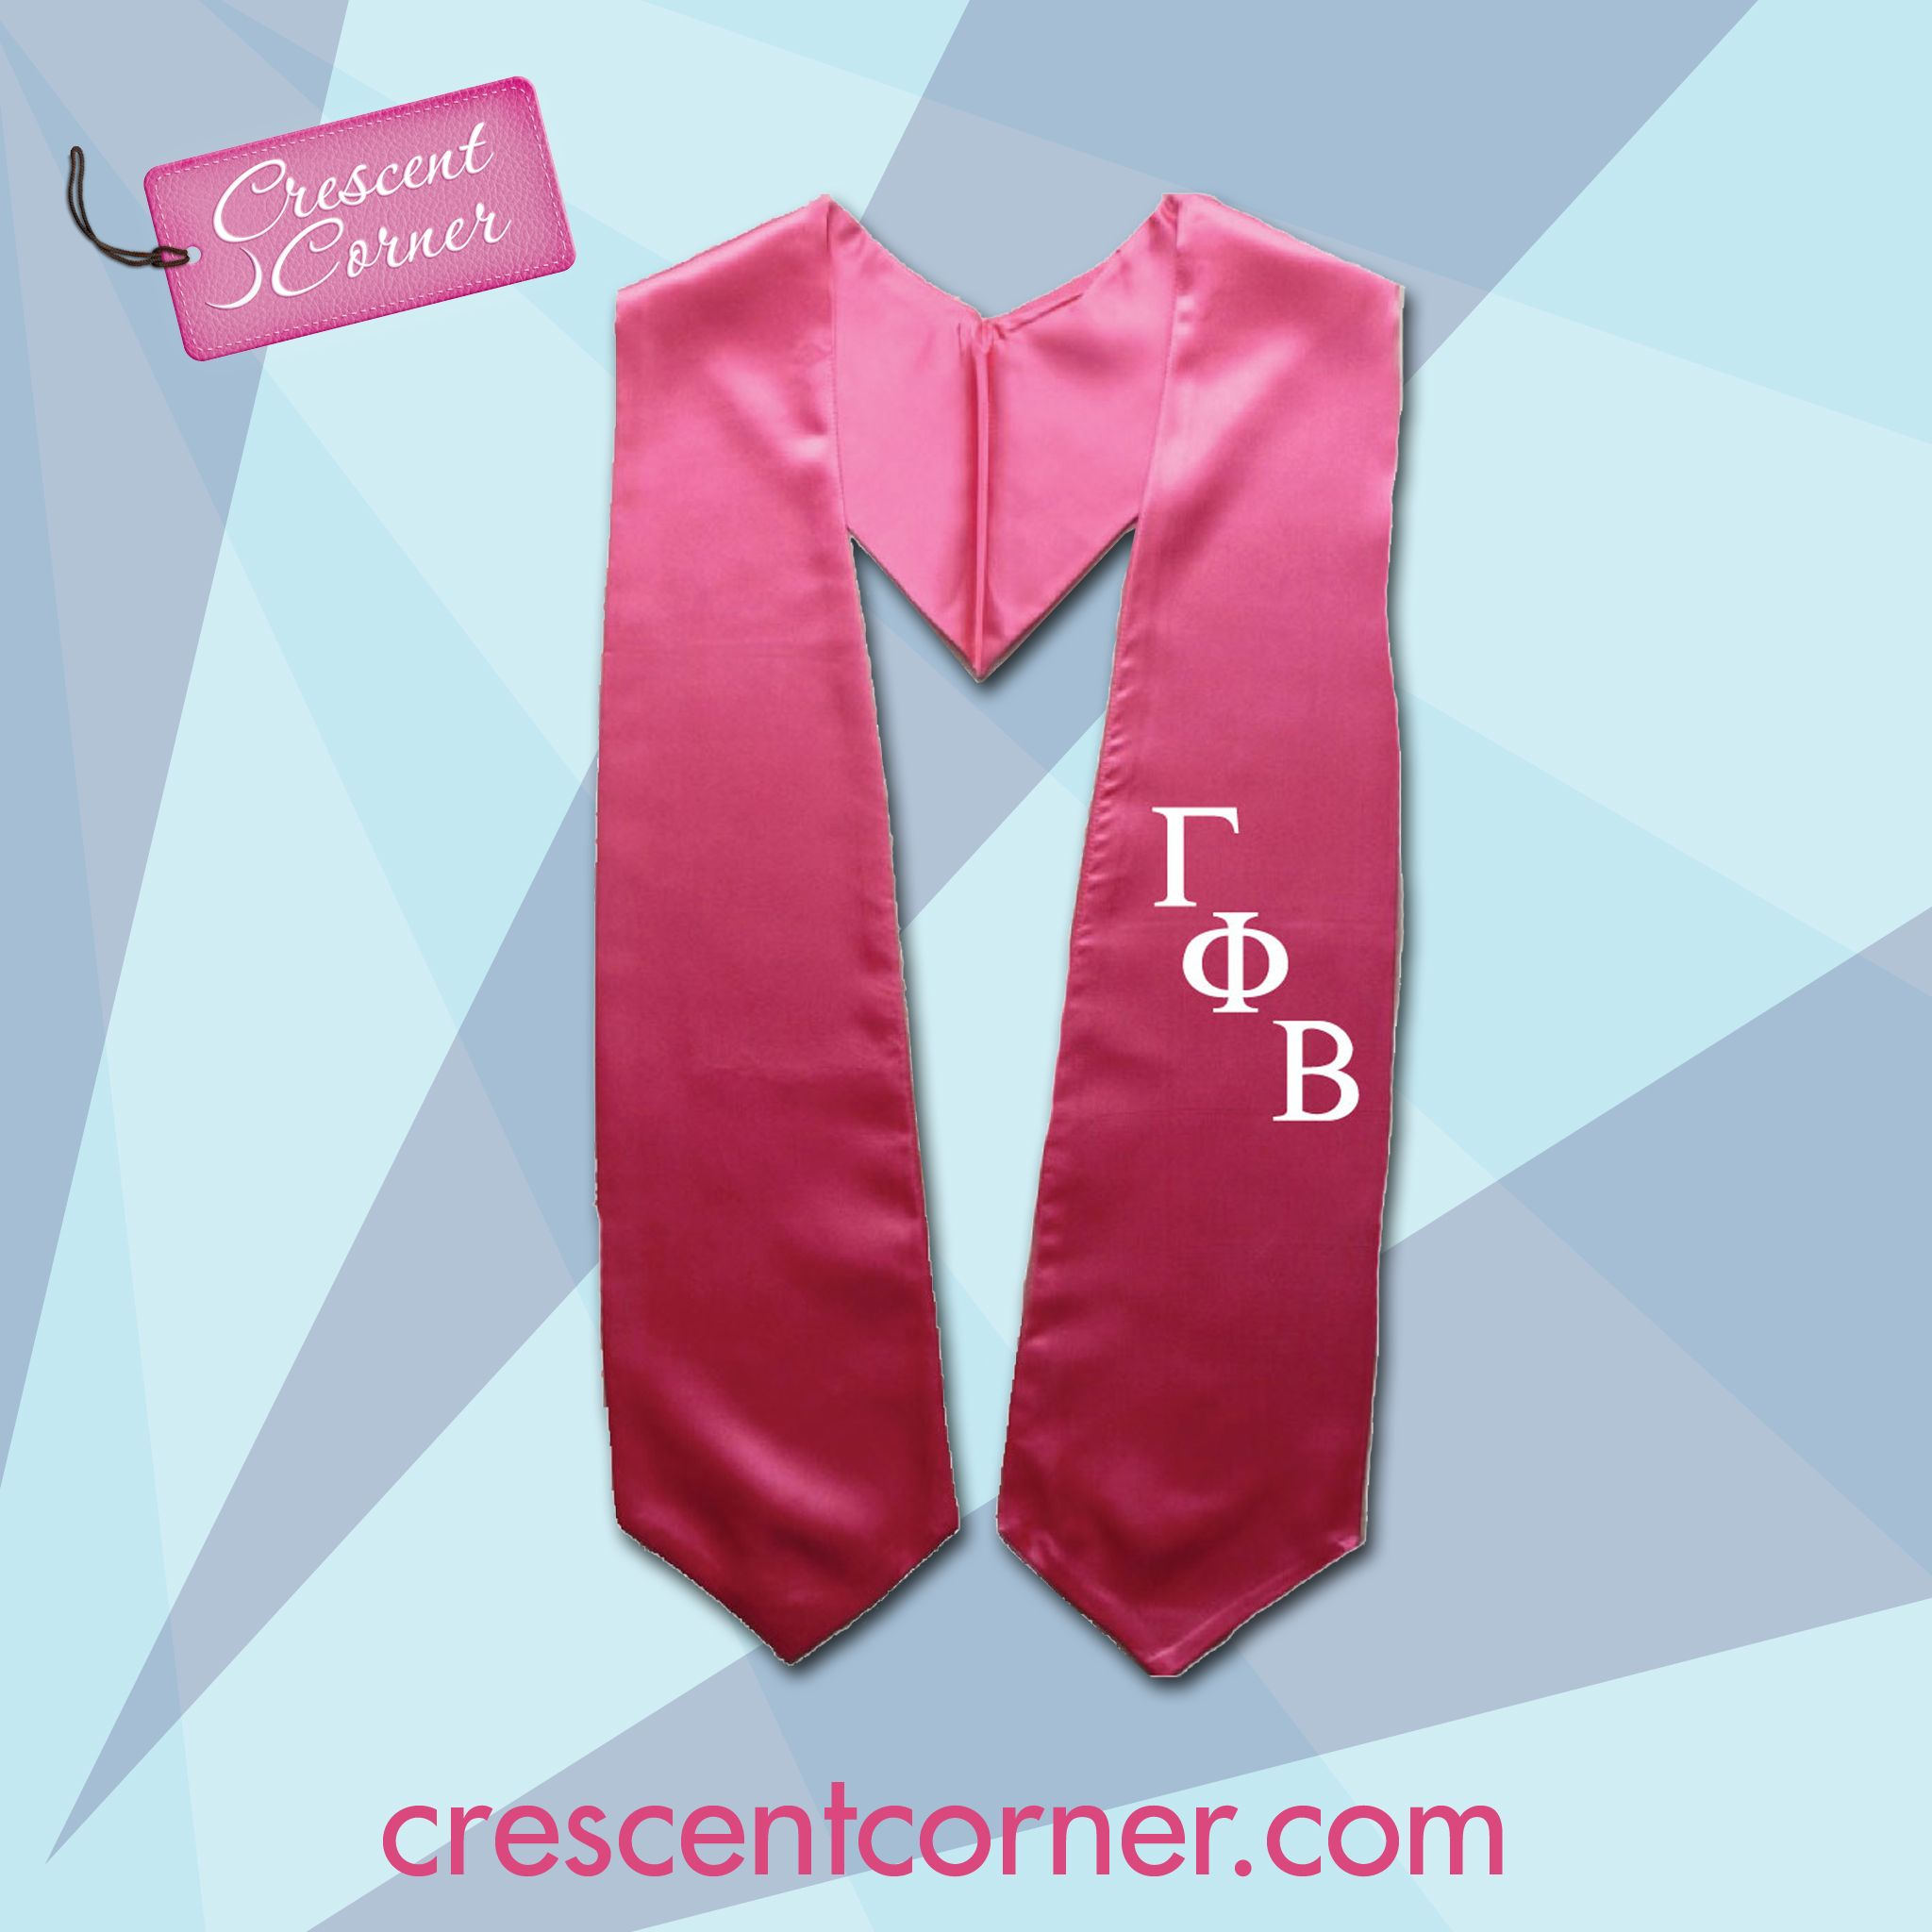 Graduating This Spring Make Sure To Order Your Graduation Stole From Crescent Corner Today Gammaphibeta Www Cresc With Images Gamma Phi Beta Graduation Stole Gamma Phi